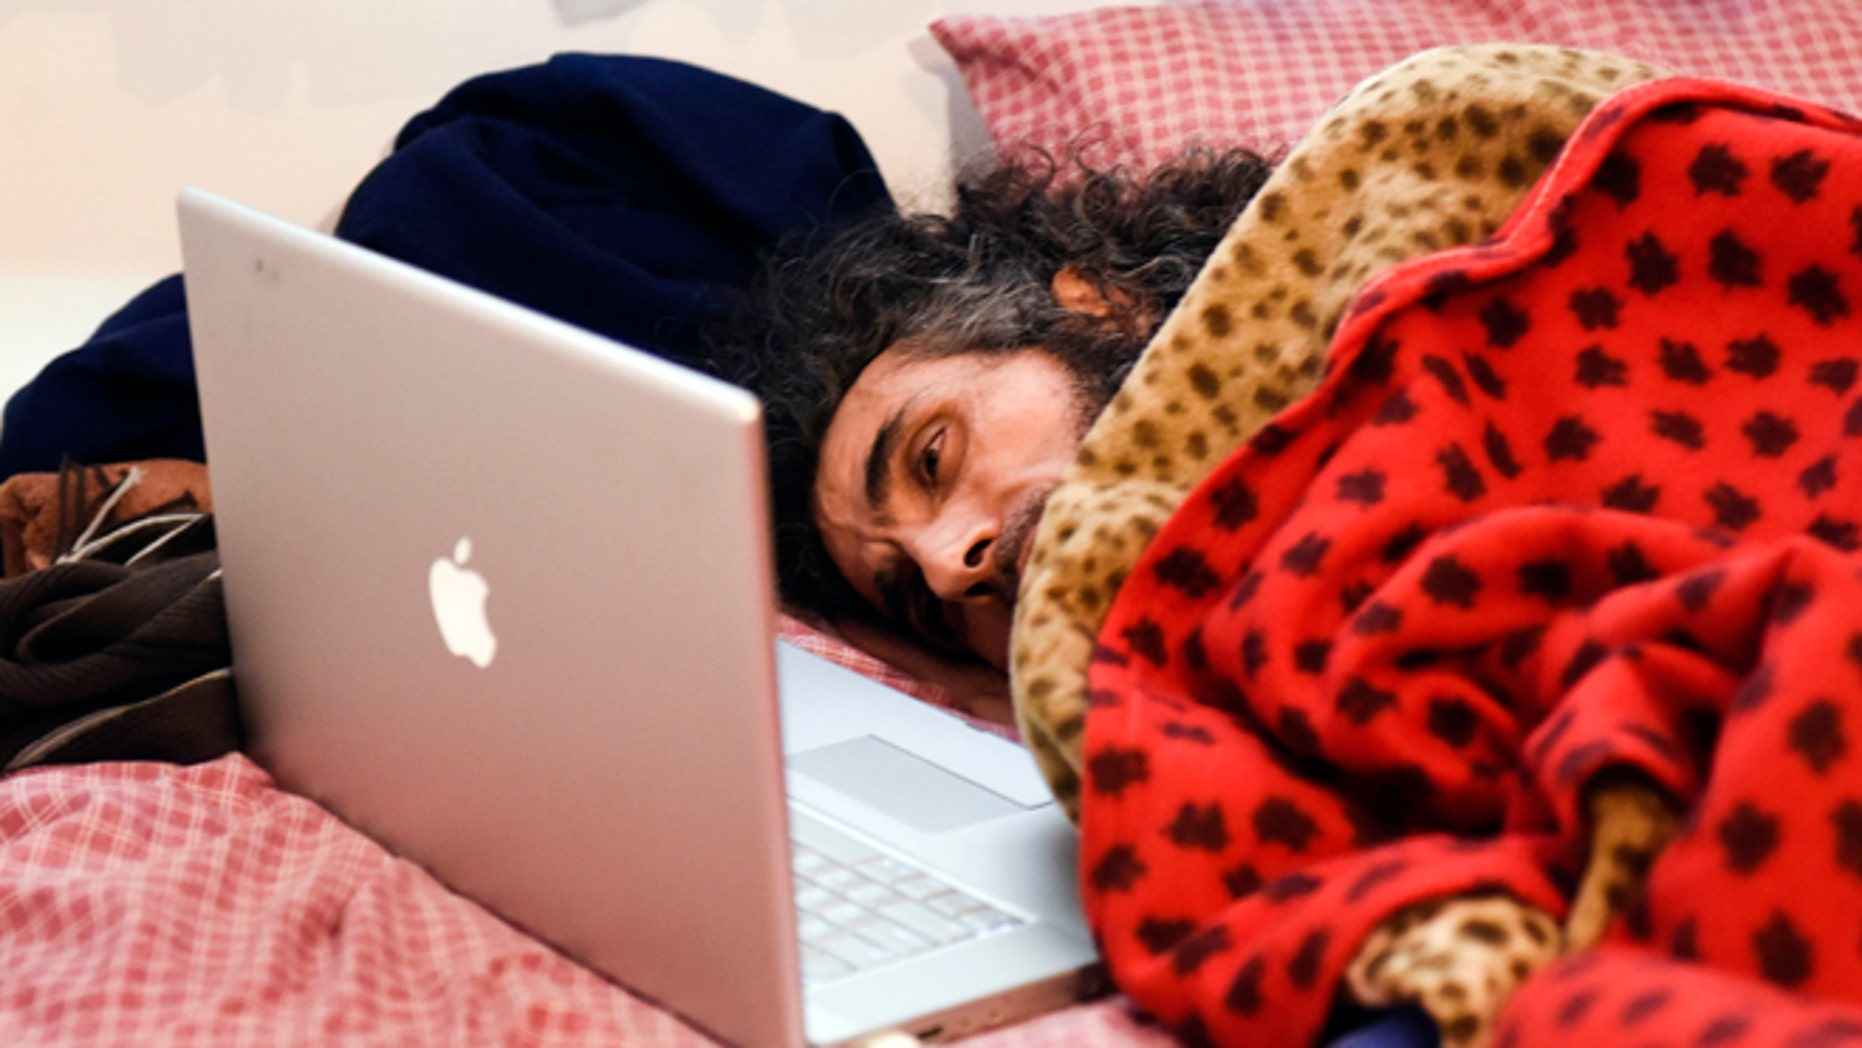 In this Friday, Sept. 9, 2016 photo, Syrian native Abu Wa'el Dhiab, a former Guantanamo detainee, rests in bed as he speaks to his family via a laptop, in his apartment in Montevideo, Uruguay. Activists and Uruguayan officials say the health of the former Guantanamo detainee resettled in the South American country is deteriorating as he continues a hunger strike at his home. Dhiab is demanding to leave Uruguay, which took him in with five other former Guantanamo prisoners in 2014. (AP Photo/Matilde Campodonico)